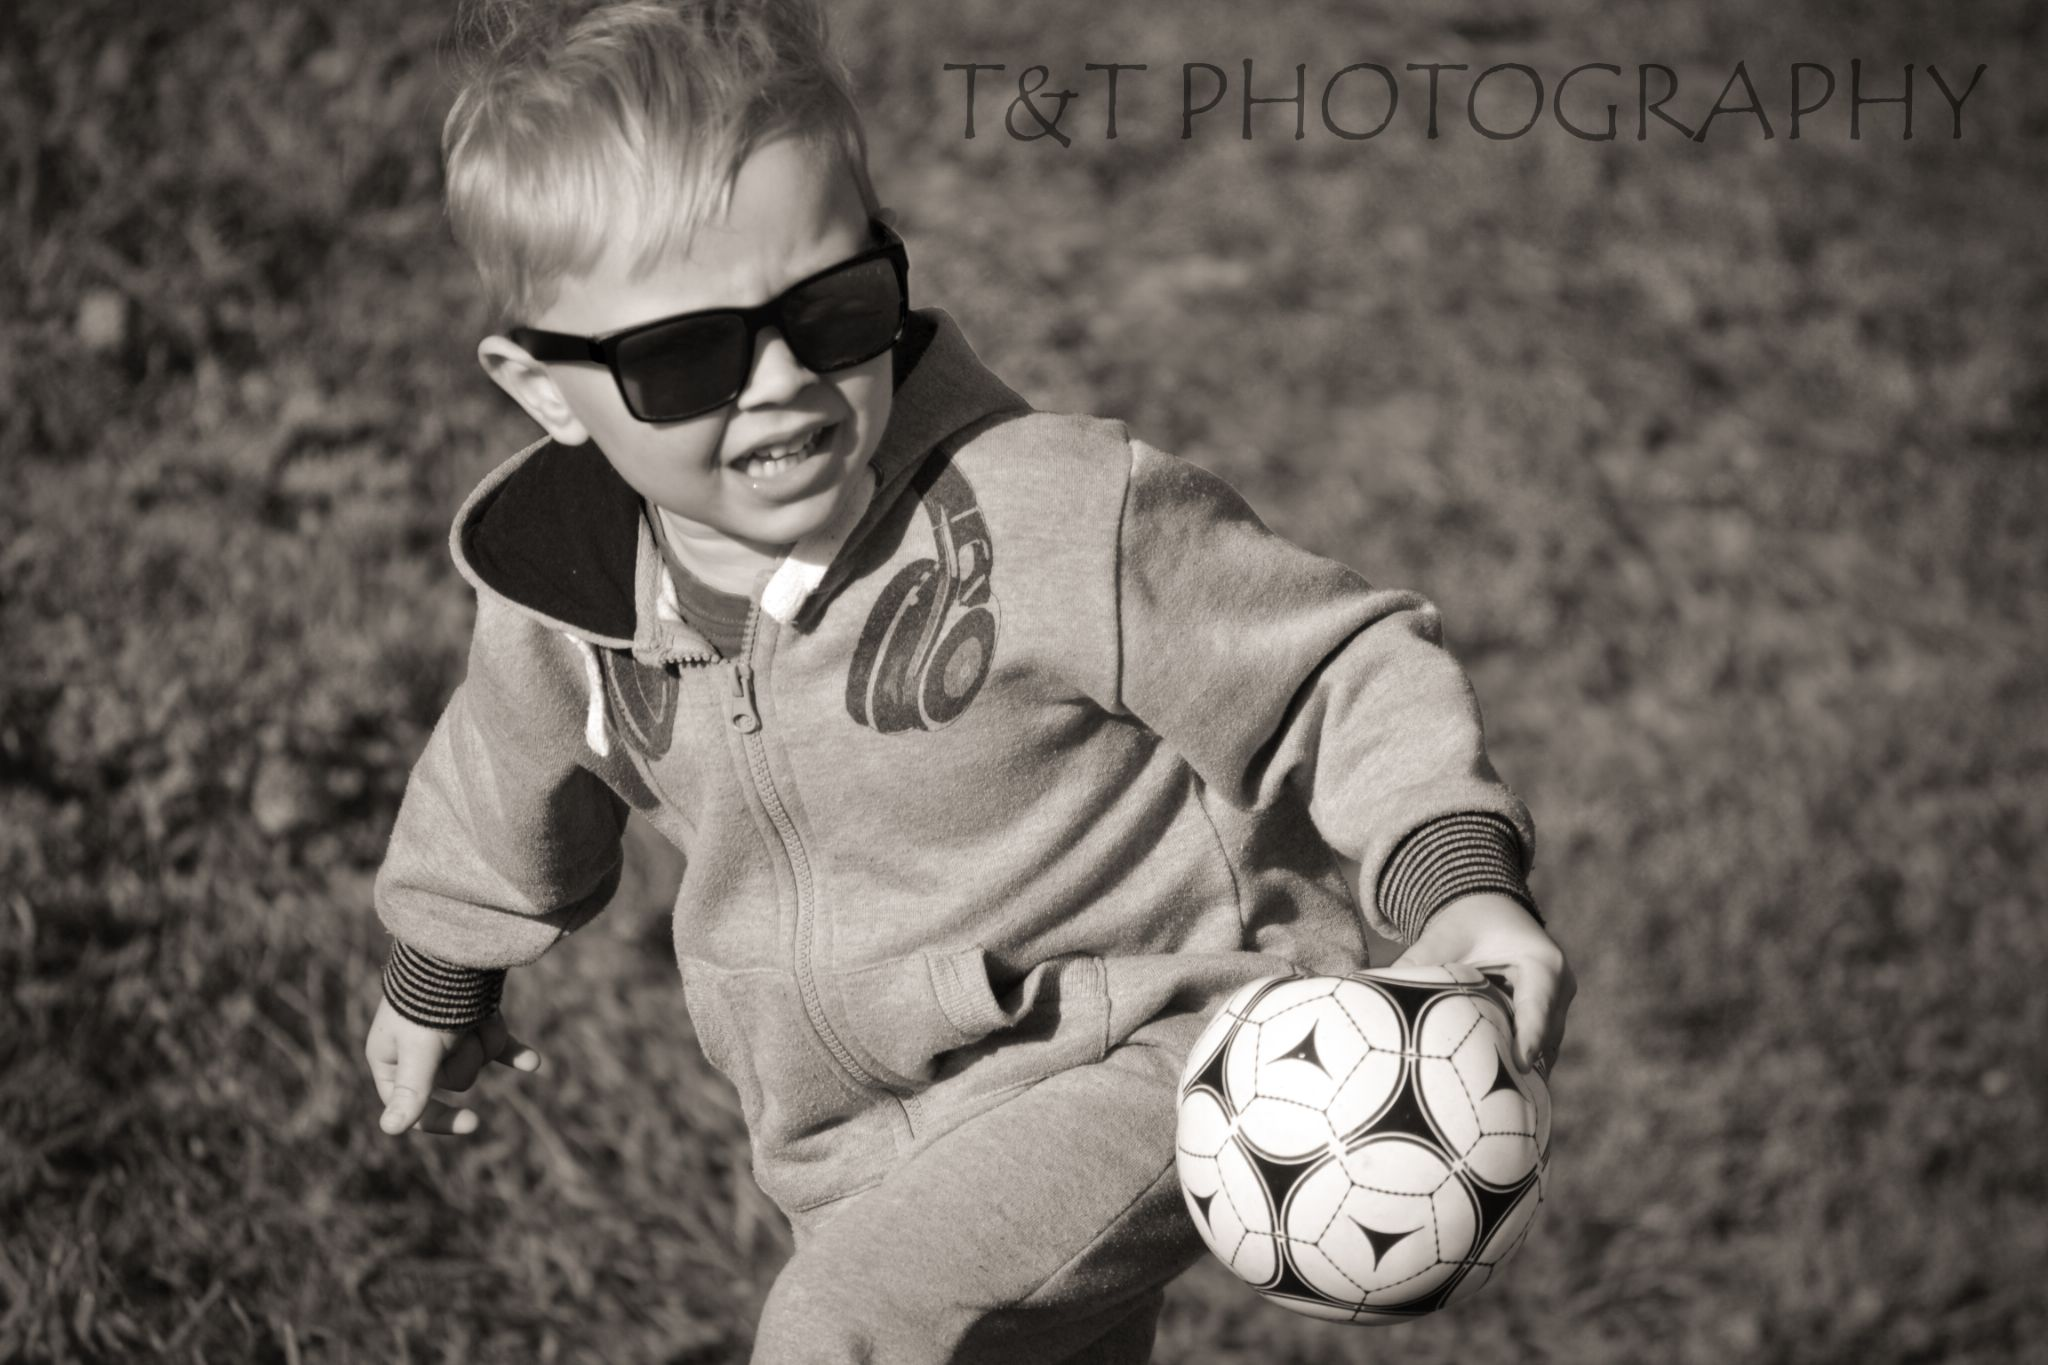 Ball Boy by T&T PHOTOGRAPHY